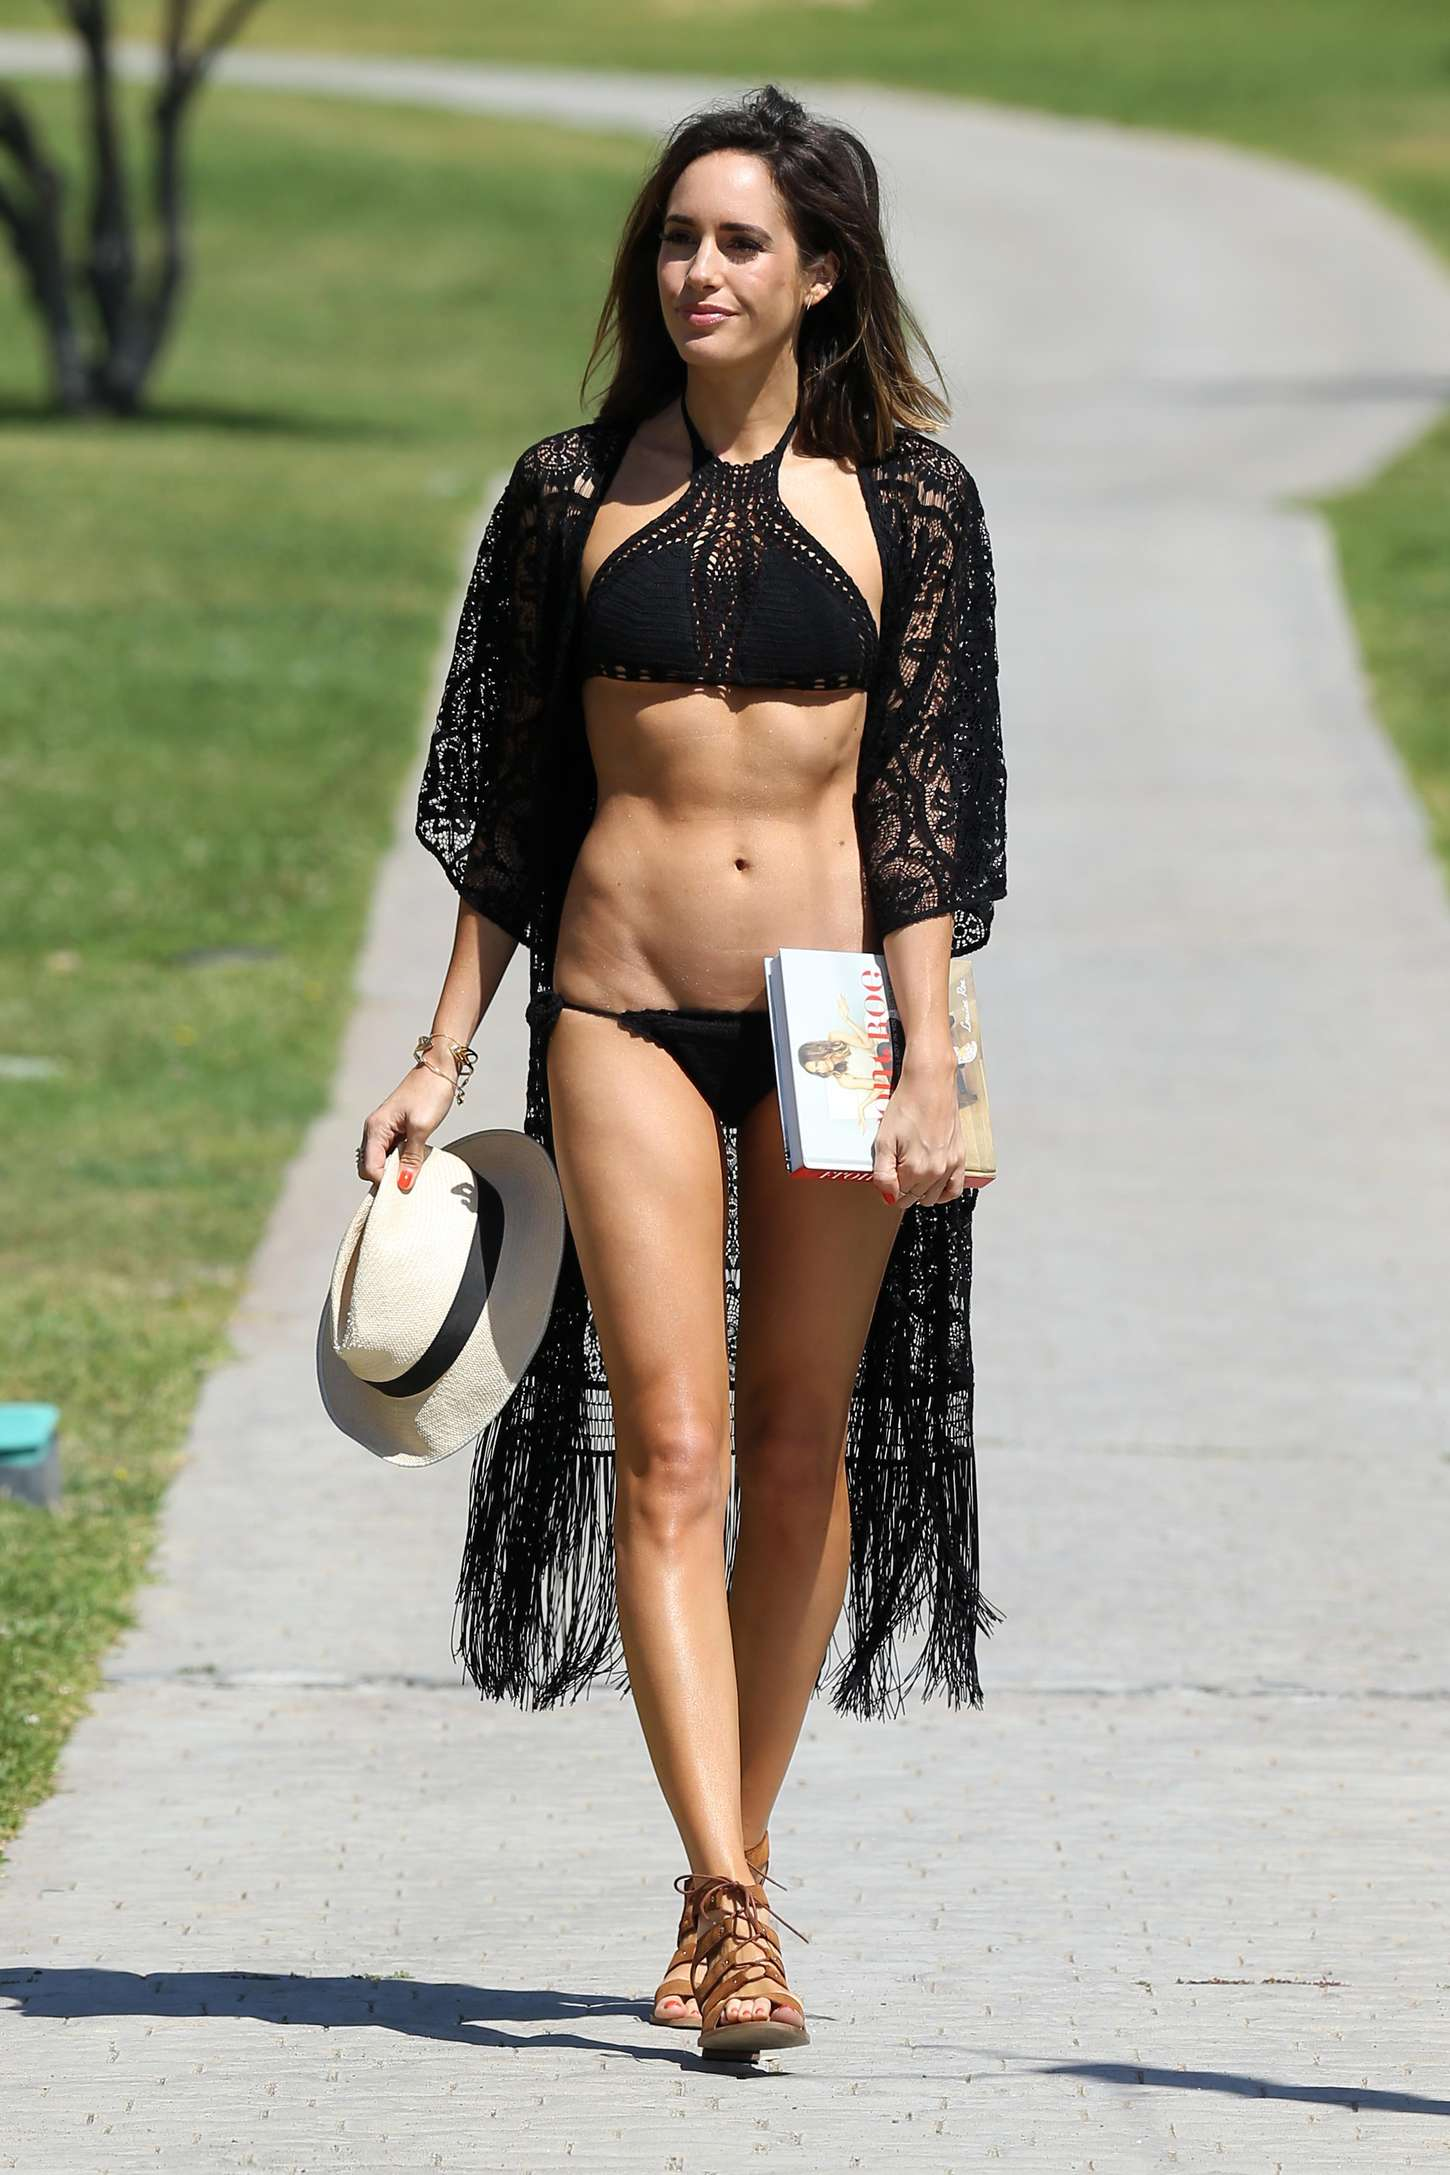 Louise Roe 2015 : Louise Roe in Black Bikini -41